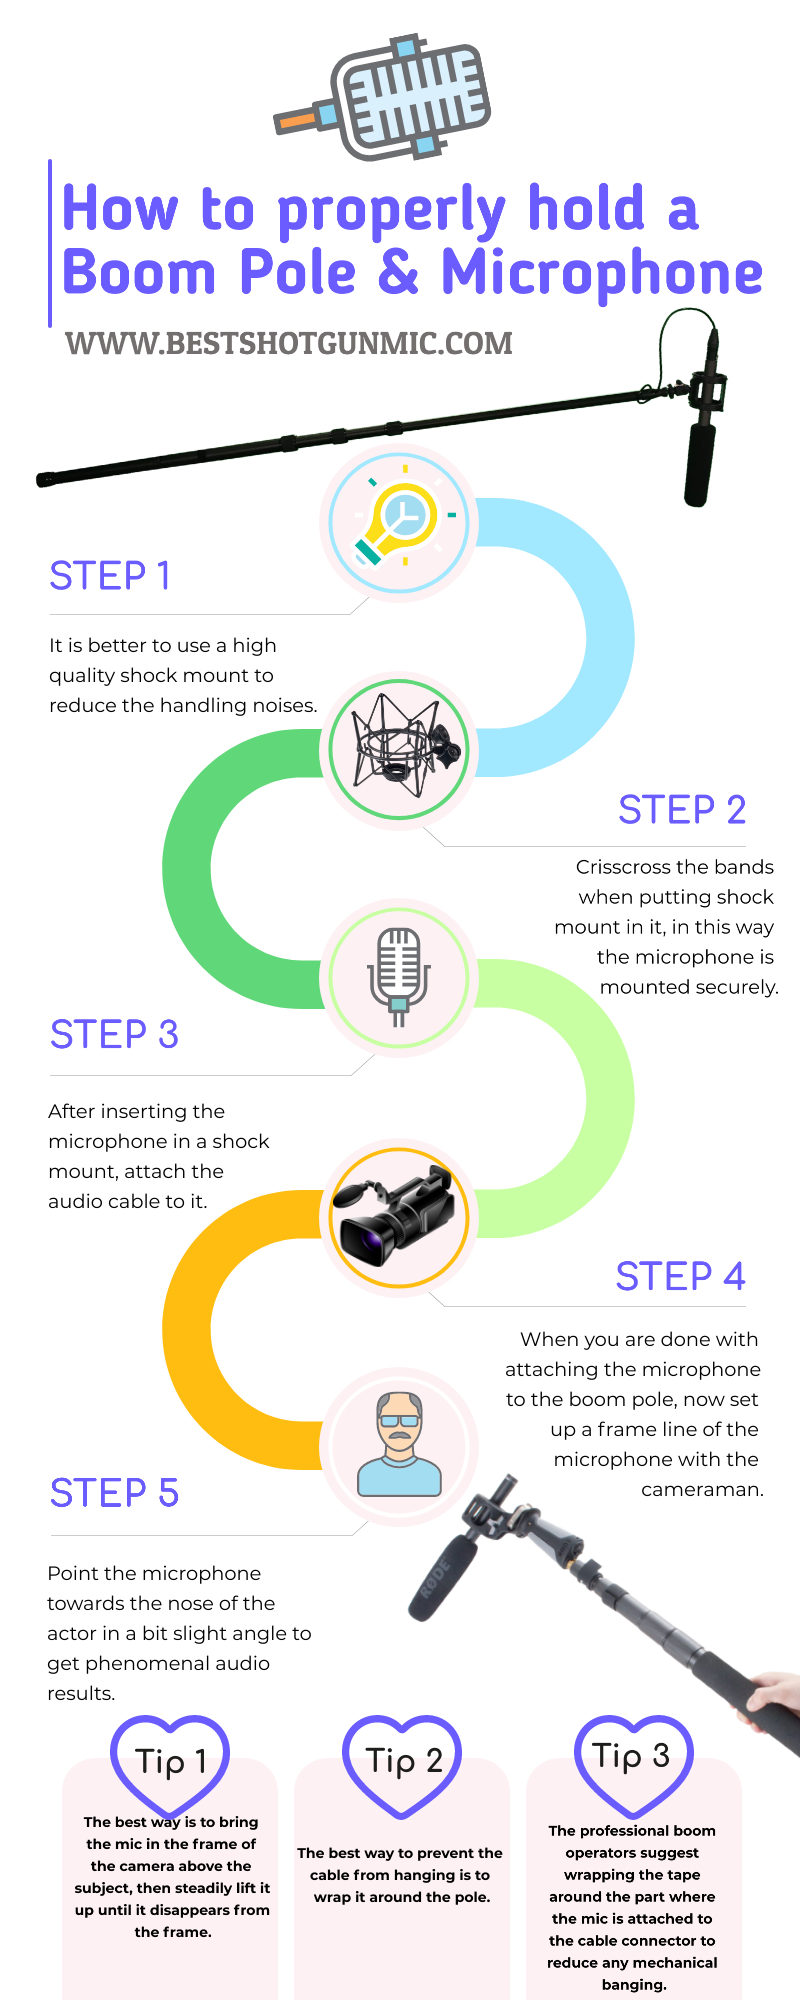 Infographics explaining how to properly hold boom pole and microphone